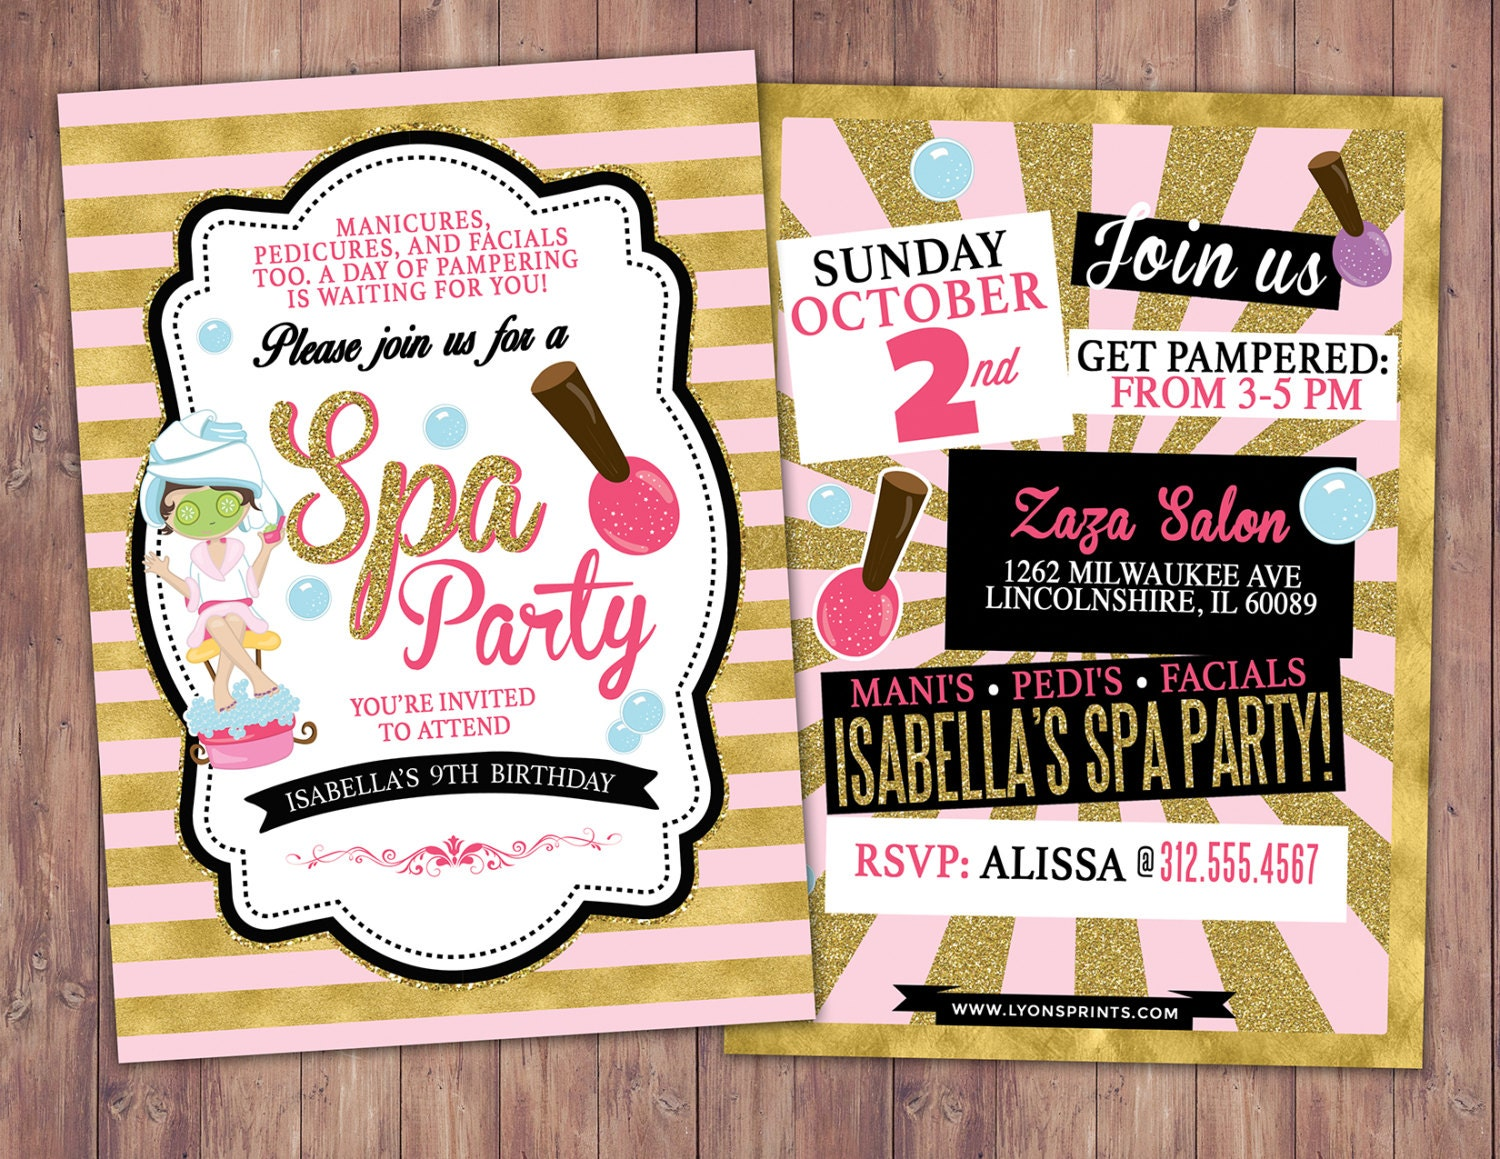 Spa party invitation VIP PASS backstage pass Vip invitation